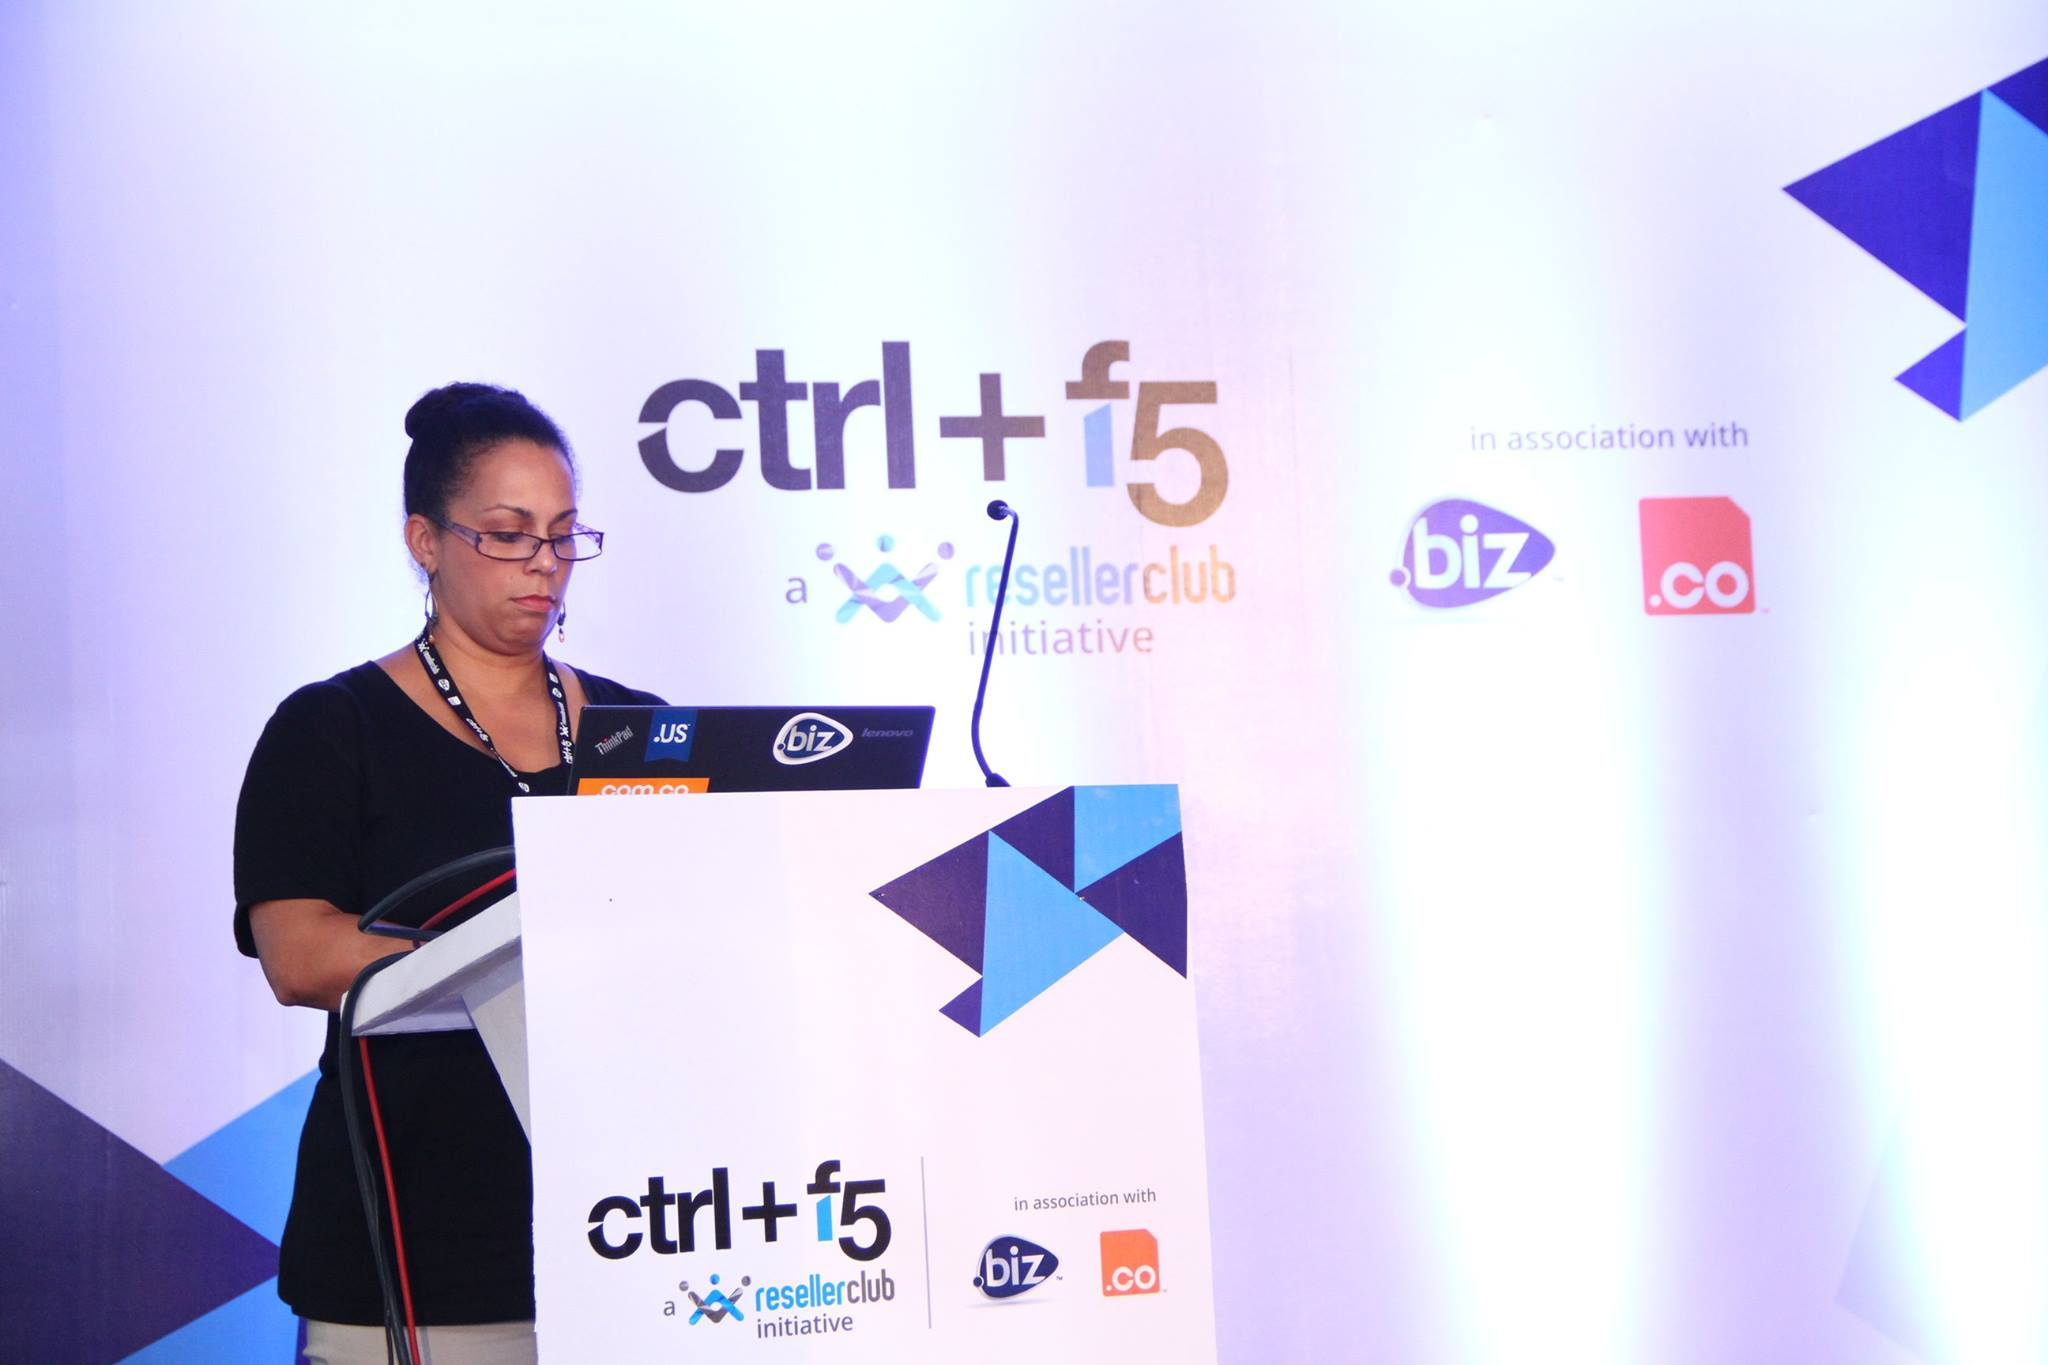 crystal peterson ctrl+f5 hyderabad 2016 resellerclub